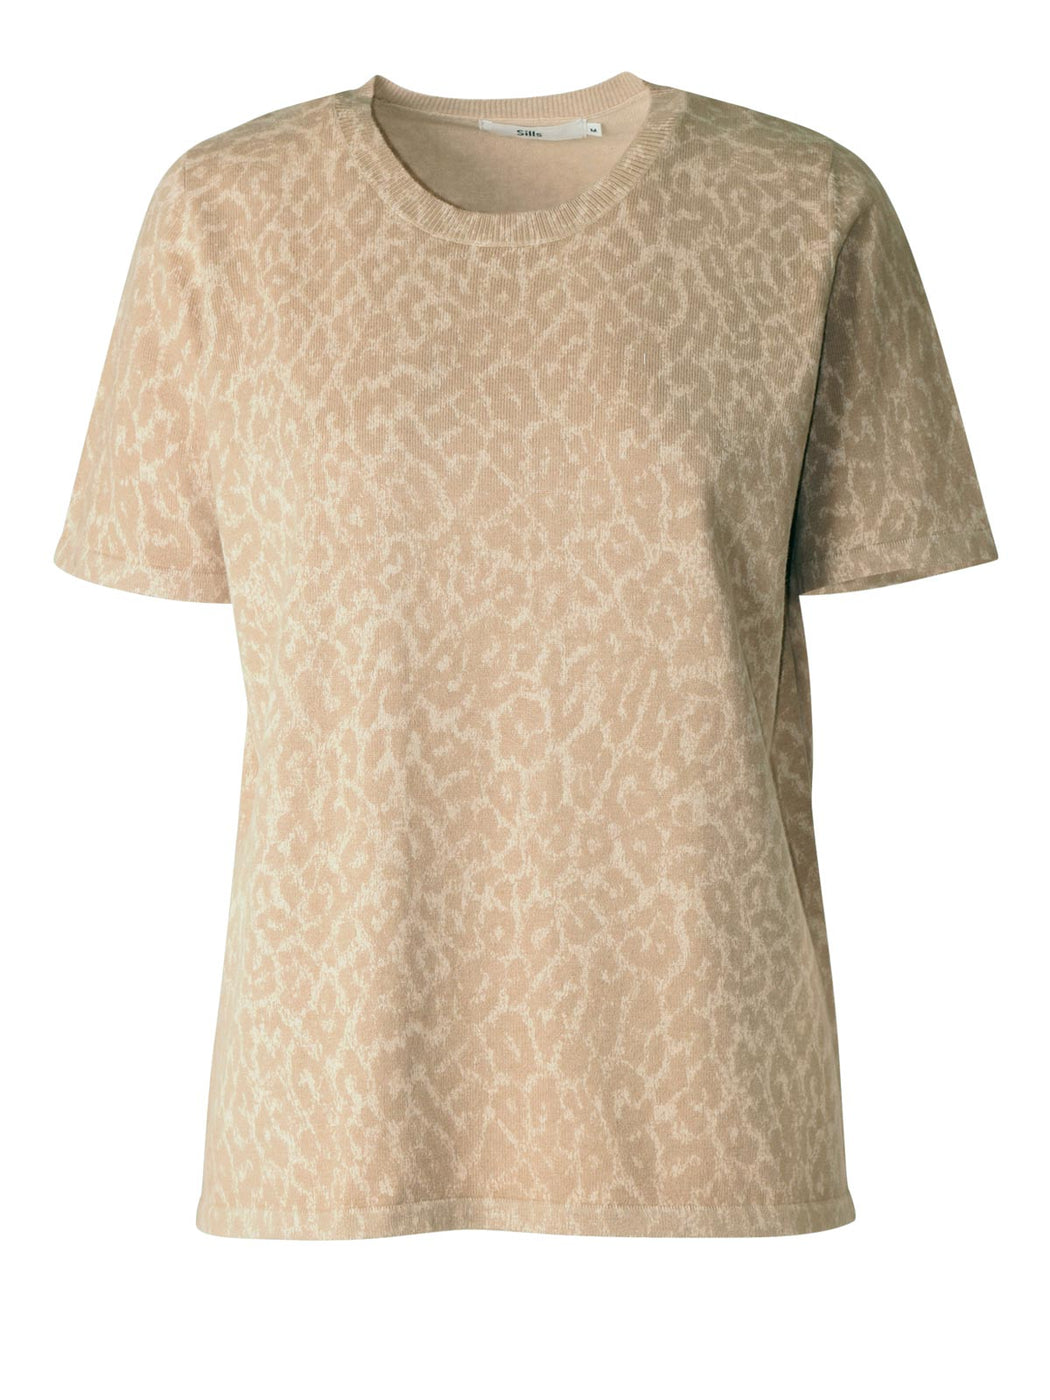 Sills Animal Knit Tee - Frappuccino | Sills in NZ Wallace & Gibbs